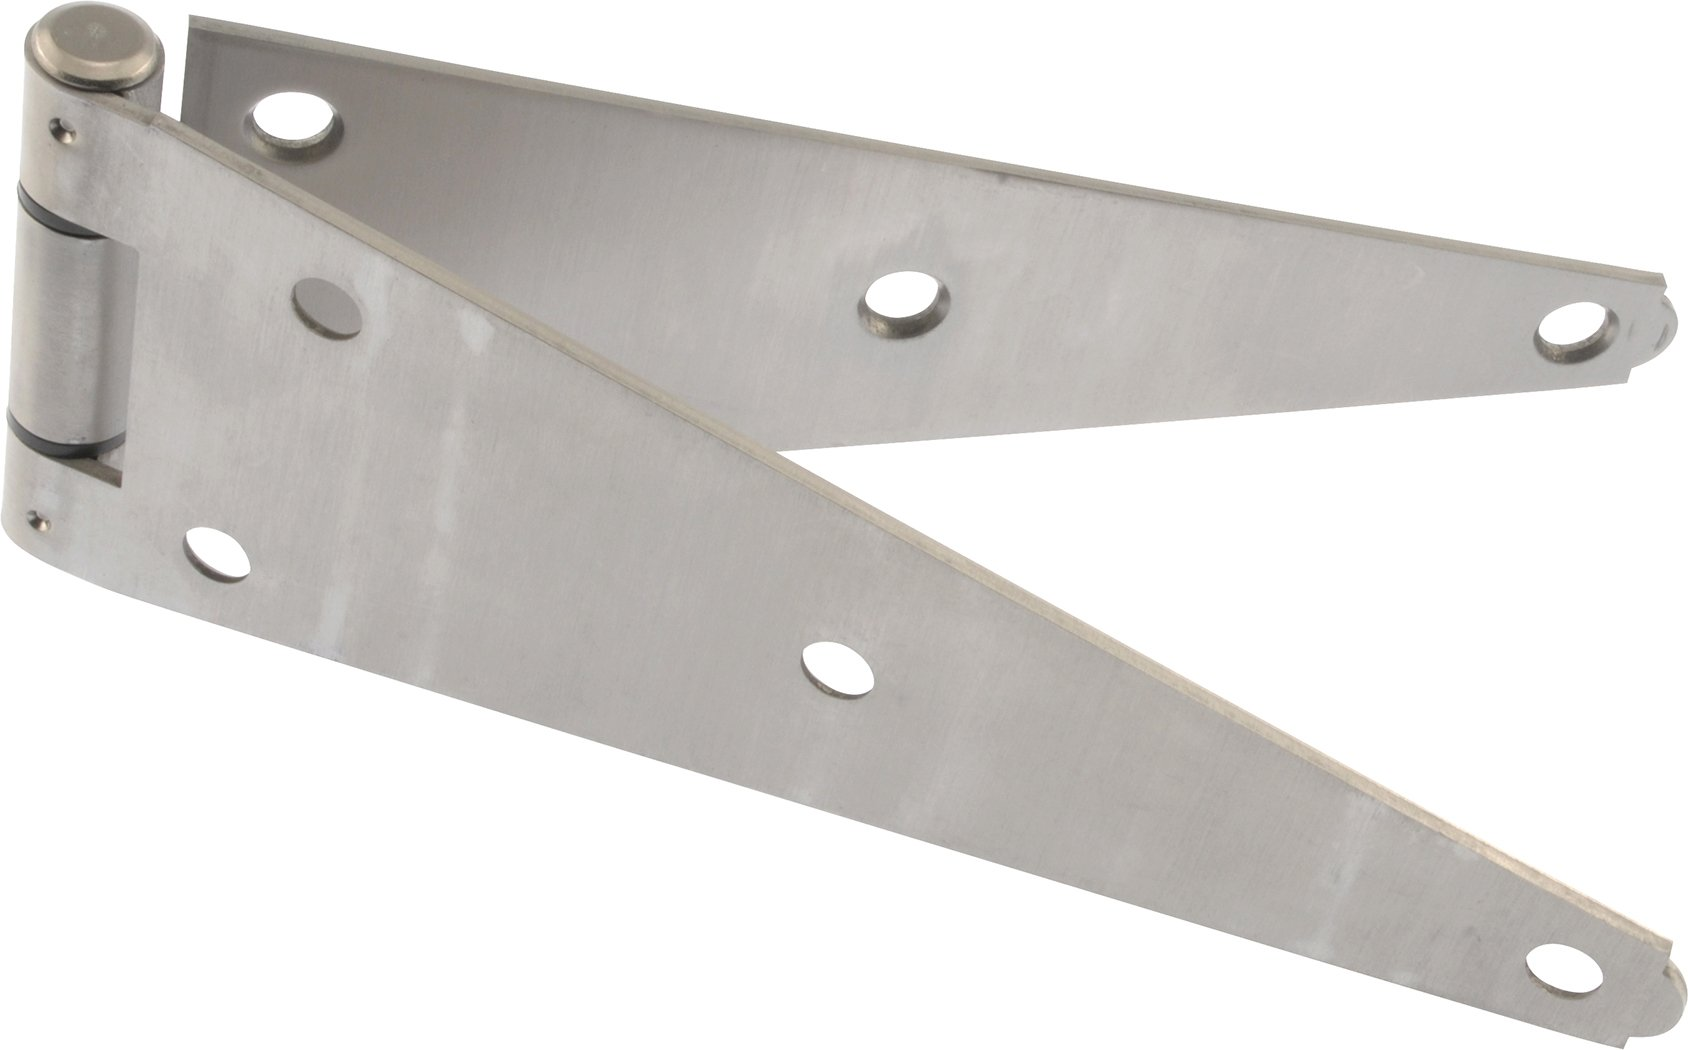 The Hillman GroupThe Hillman Group 853376 8'' Heavy Strap Hinge- Stainless Steel 1-Pack by The Hillman Group